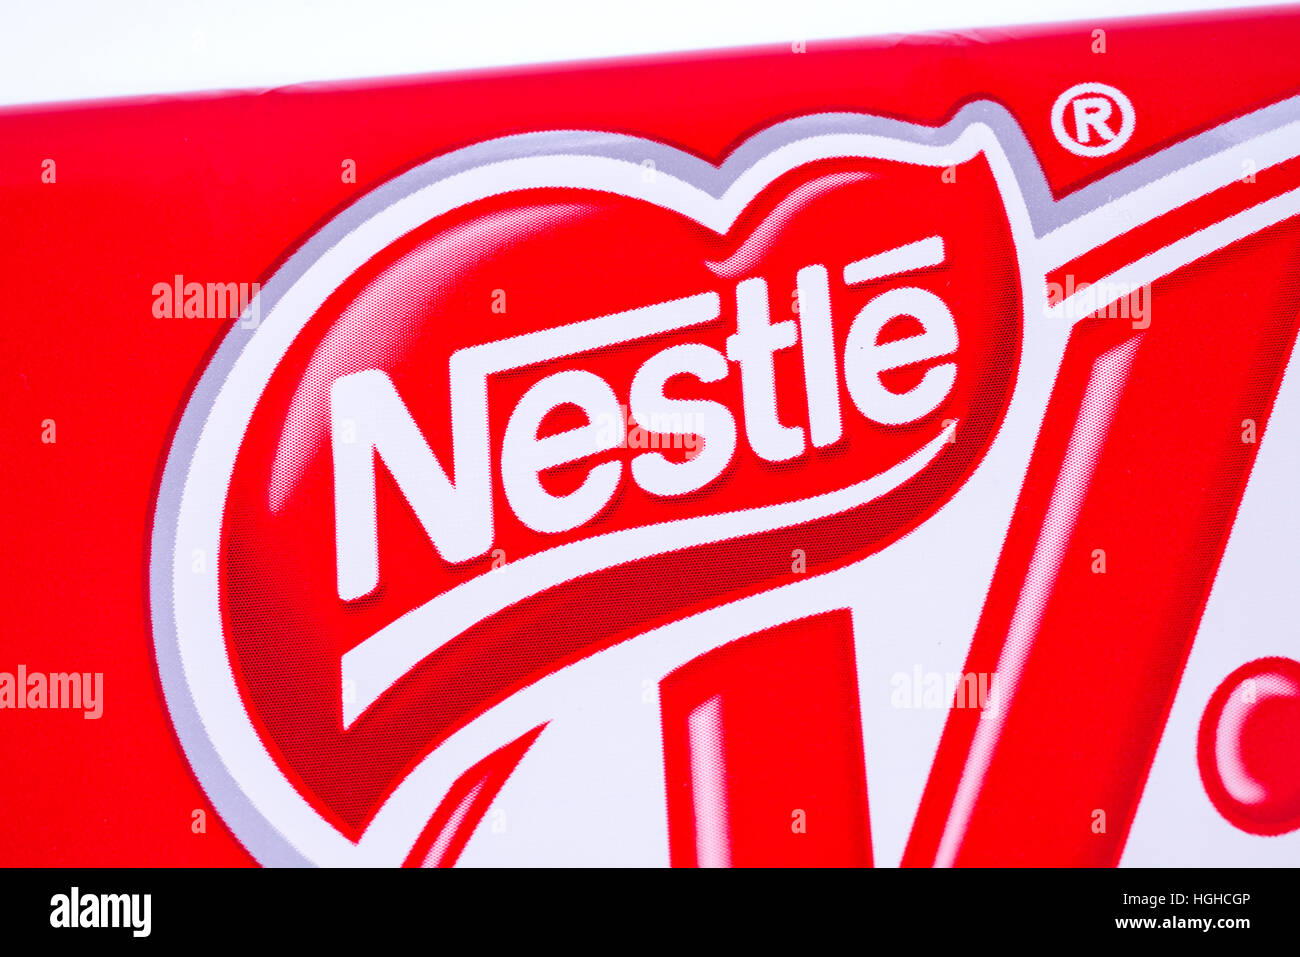 LONDON, UK - JANUARY 4TH 2017: A close-up of the Nestle logo on one of their confectionery products. - Stock Image